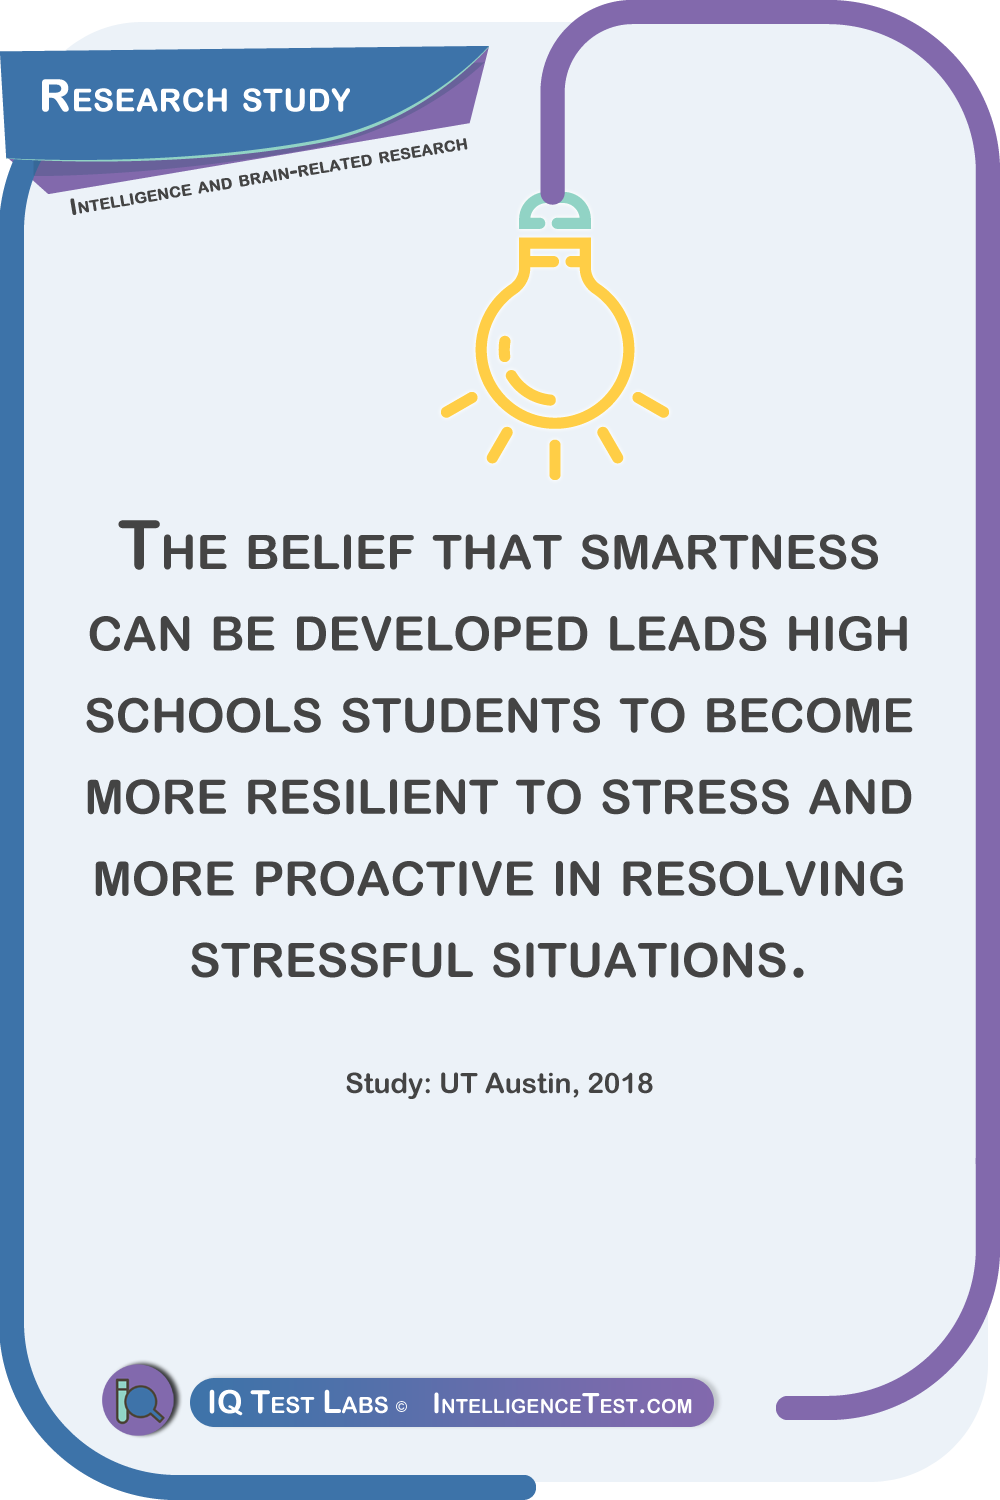 The belief that smartness can be developed leads high schools students to become more resilient to stress and more proactive in resolving stressful situations. Study: UT Austin, 2018.